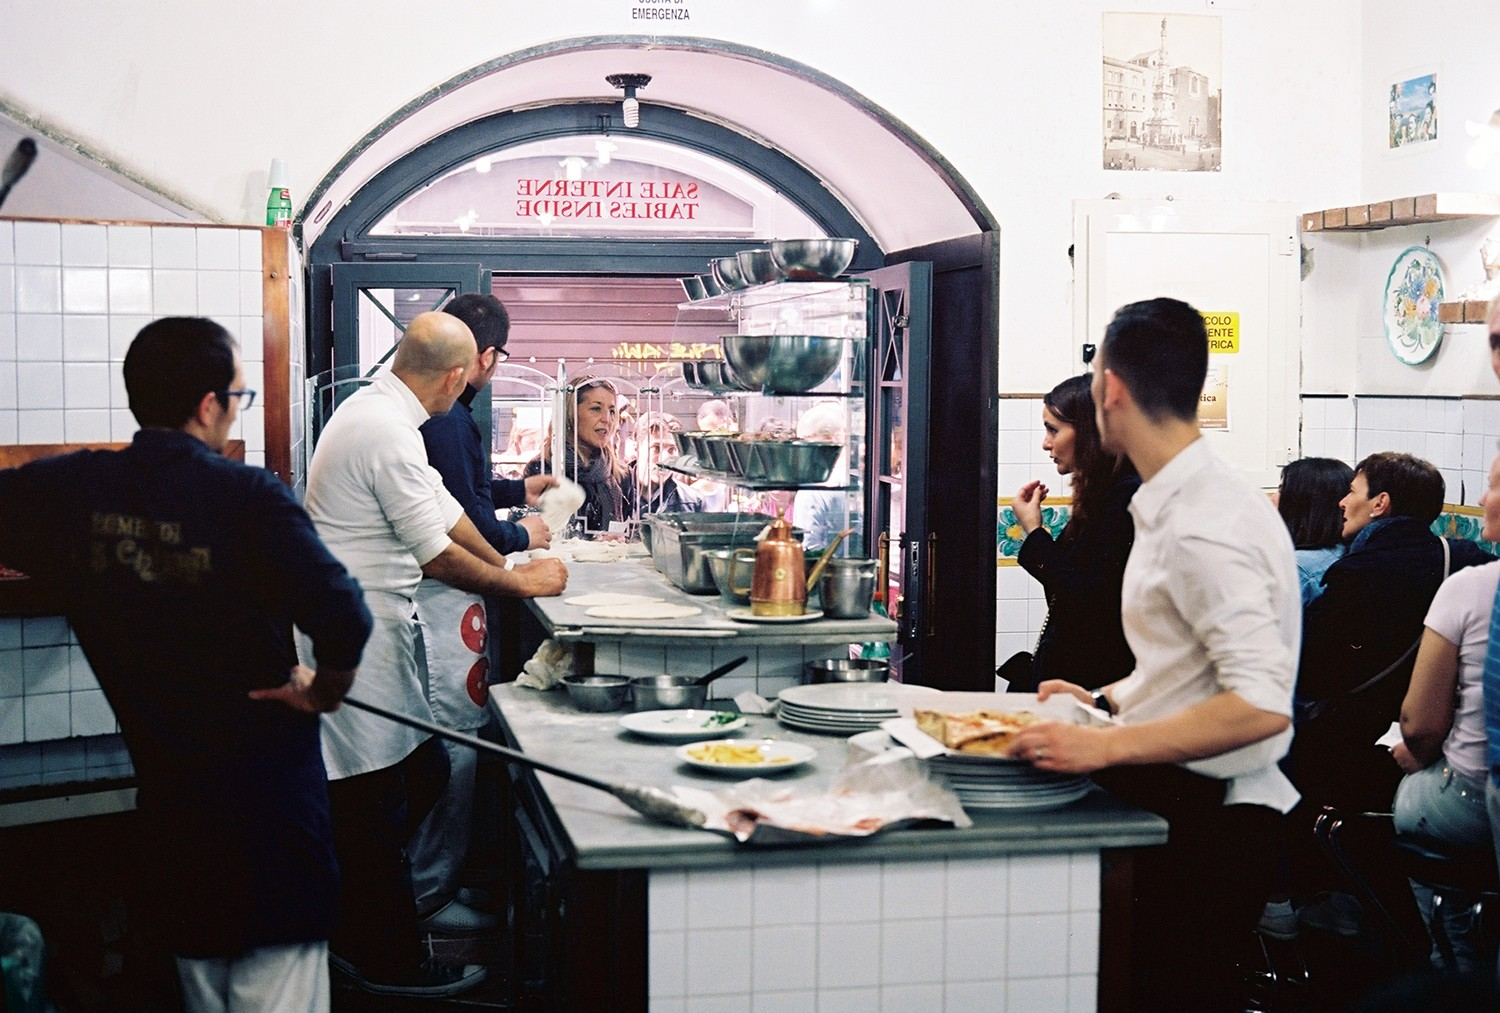 Patrons chat with the pizzaioli at Lombardi a Santa Chiara while they wait for their